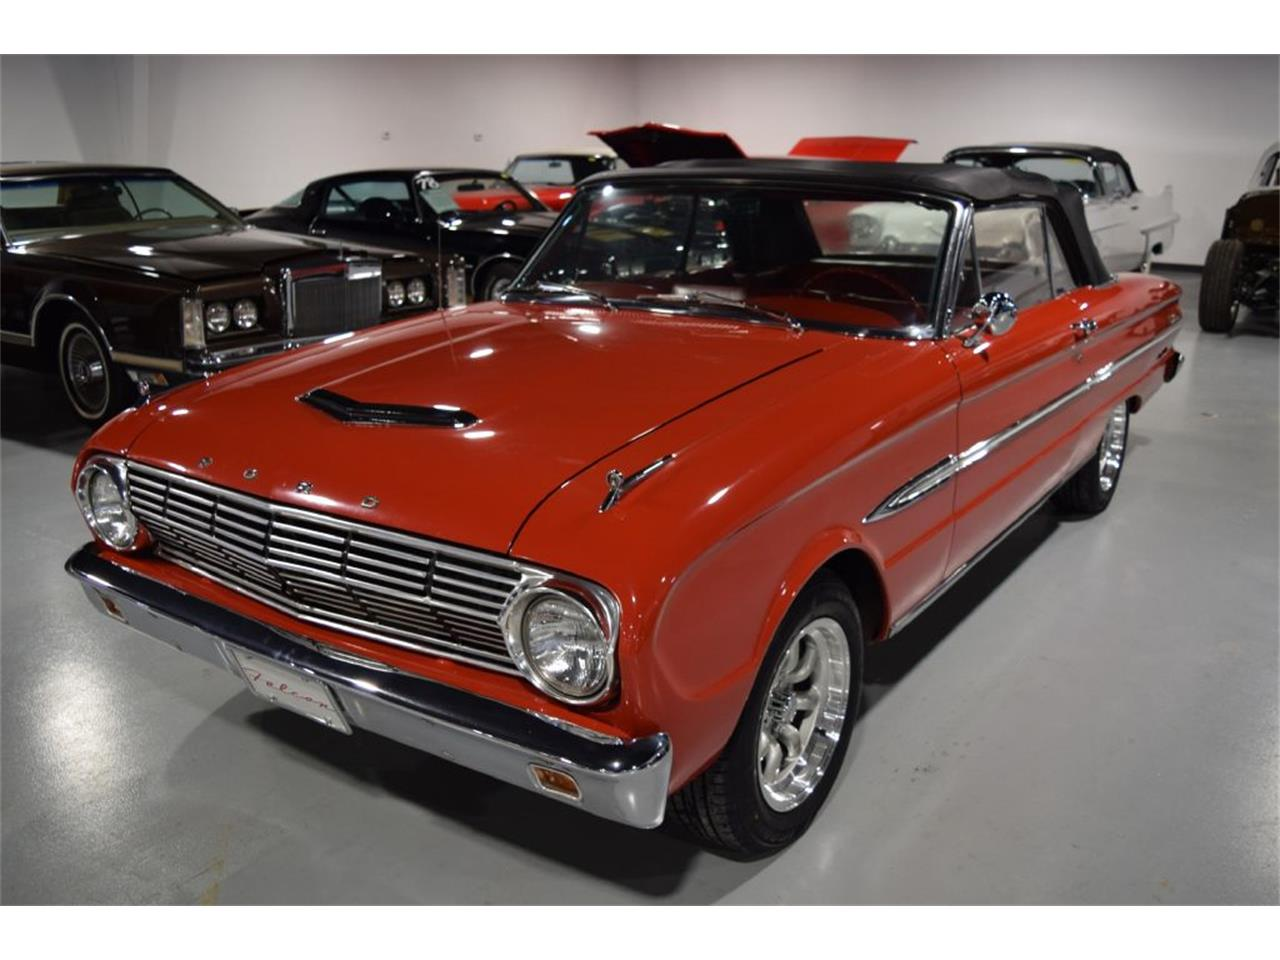 1963 Ford Falcon Futura for sale in Sioux City, IA – photo 2